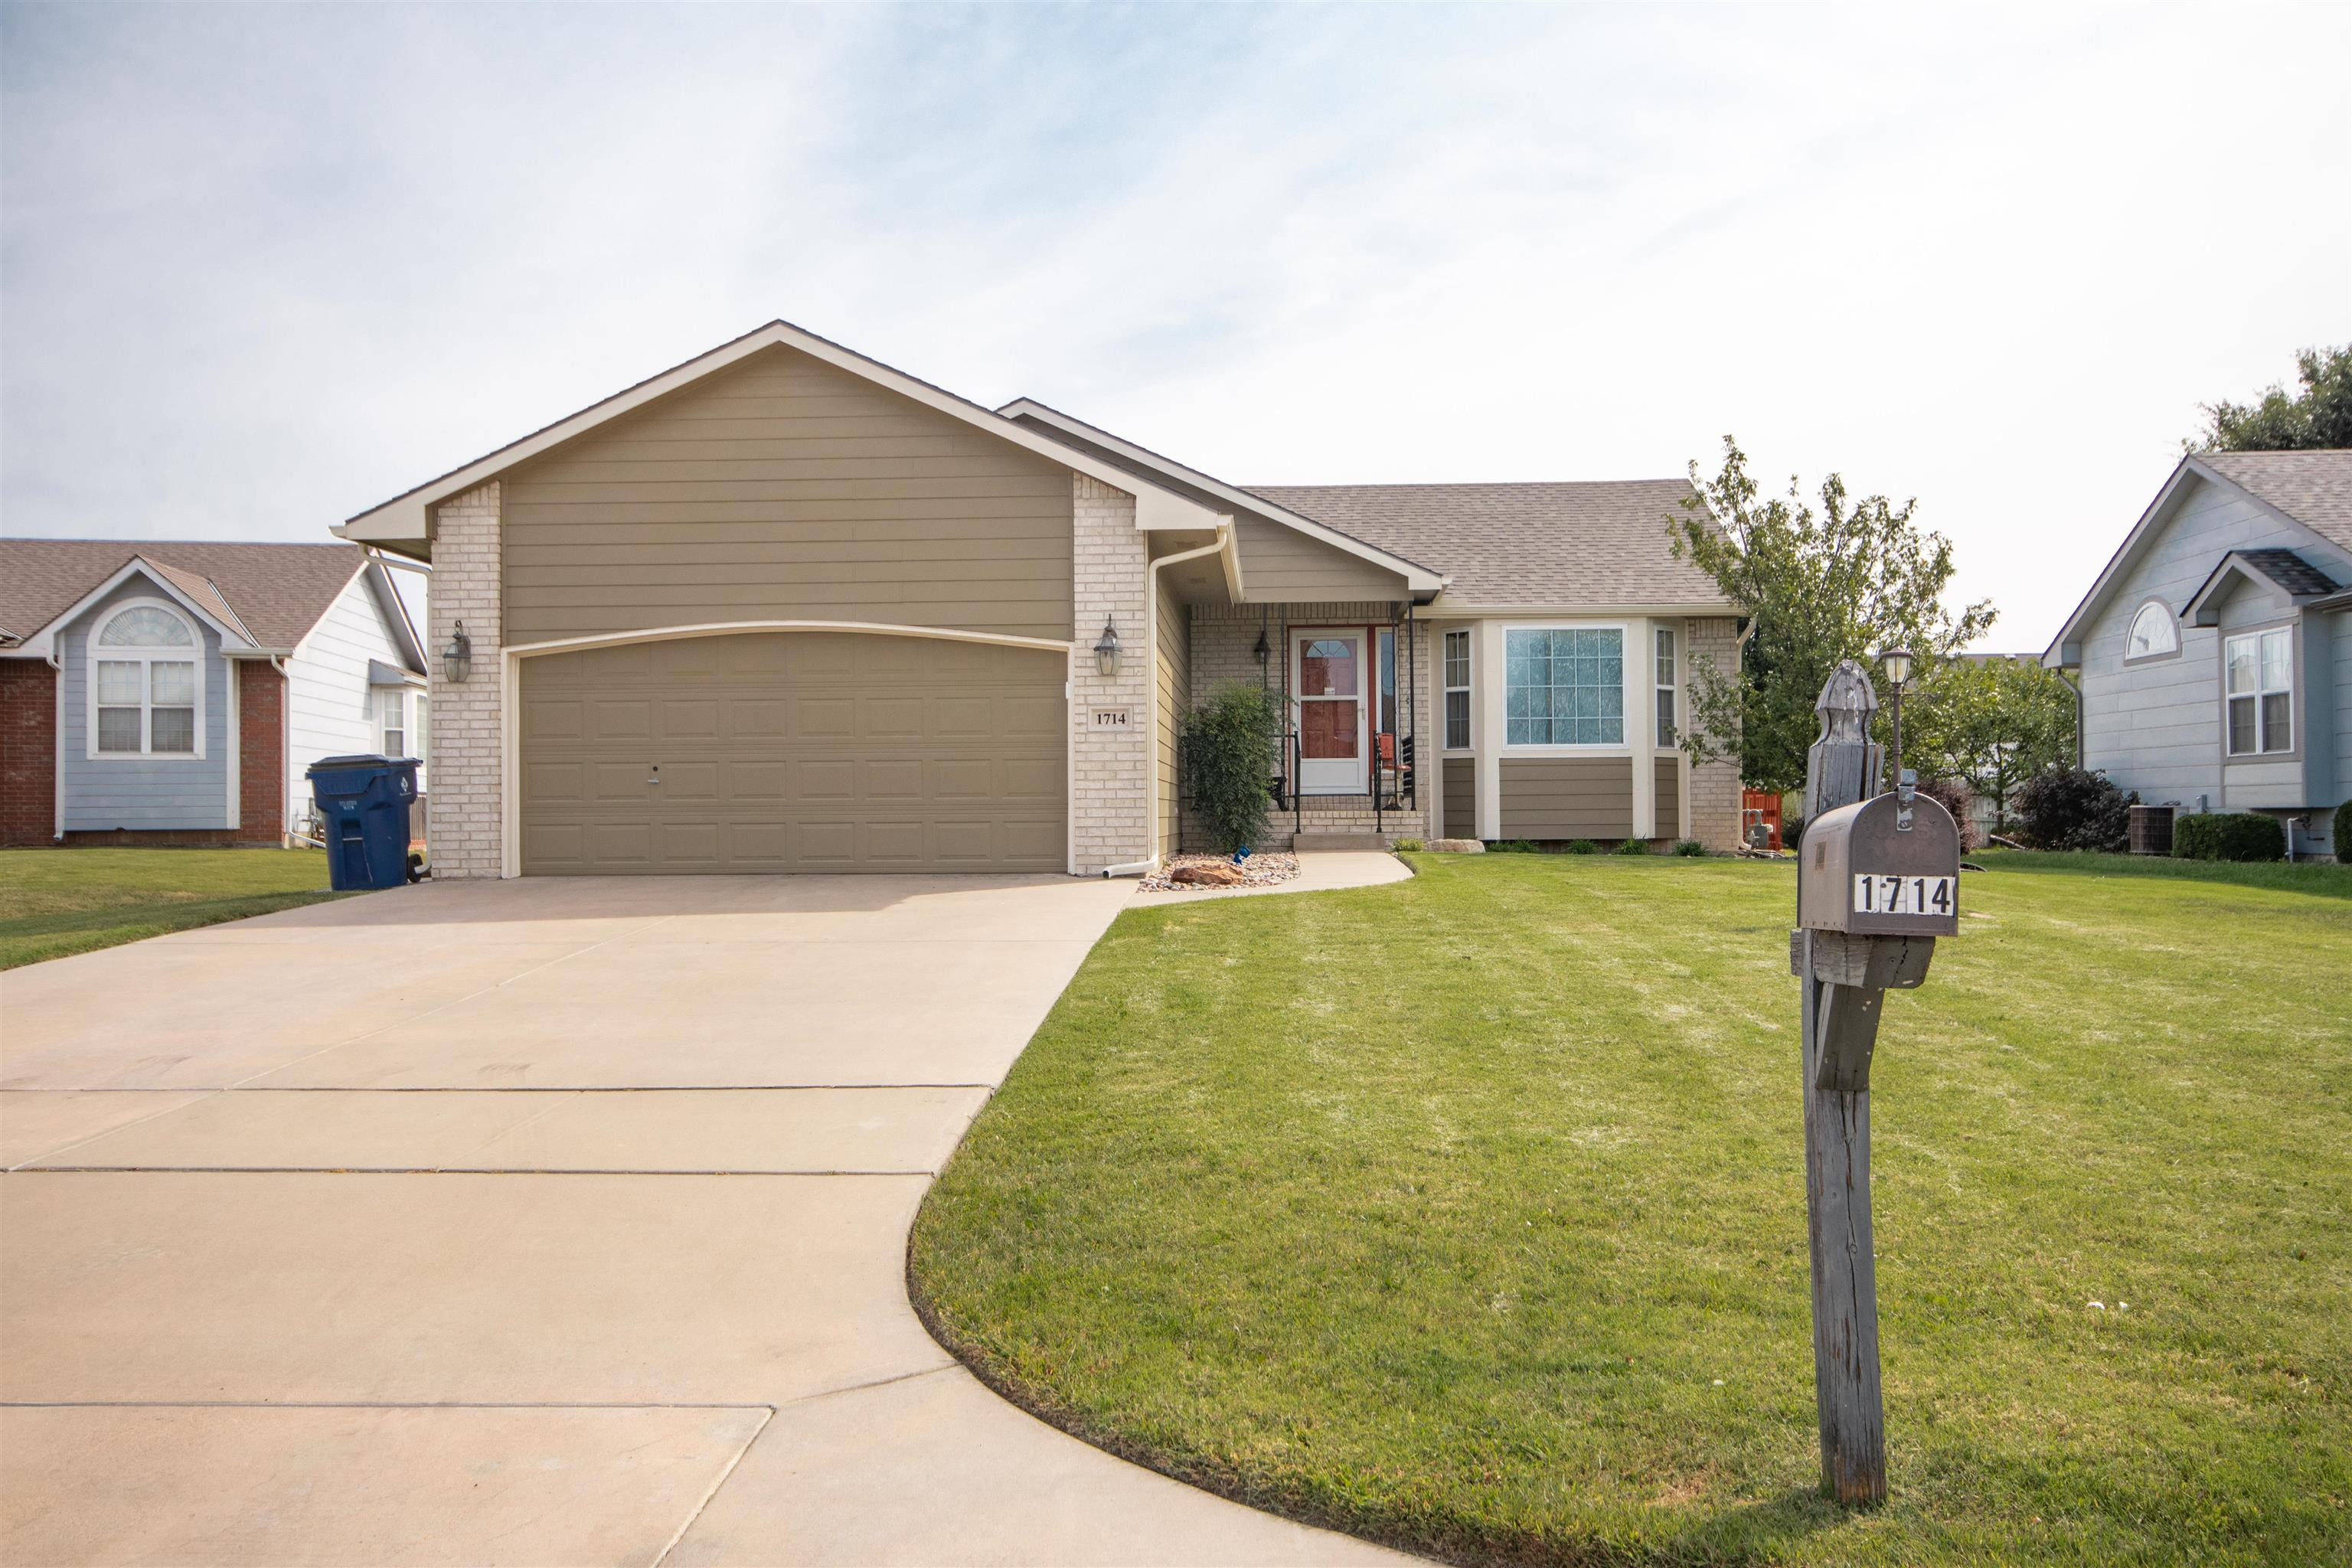 This home is situated in a prime east side location on a quiet cul-de-sac. With easy access to shopp